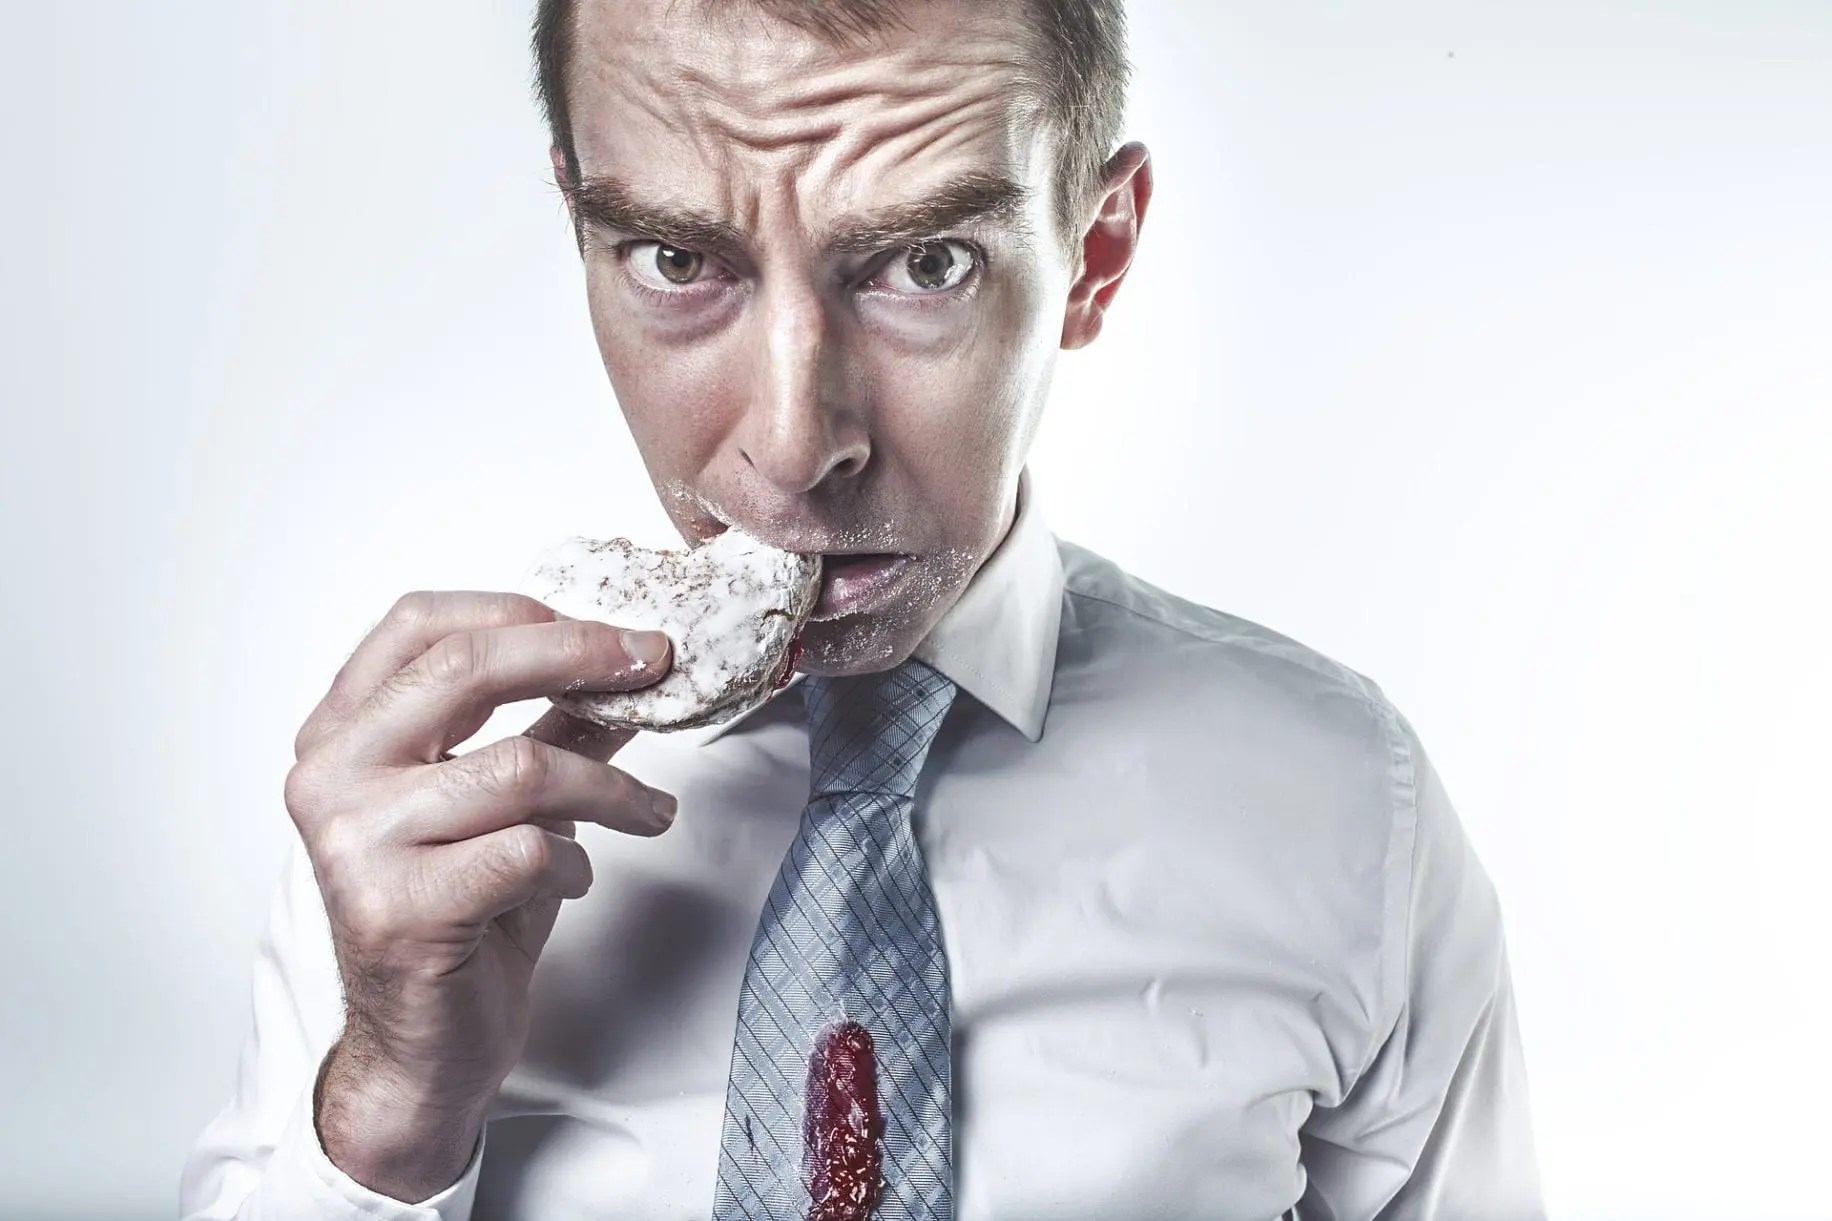 Effective Self-Control Strategies Involve Much More Than Willpower, Research Shows